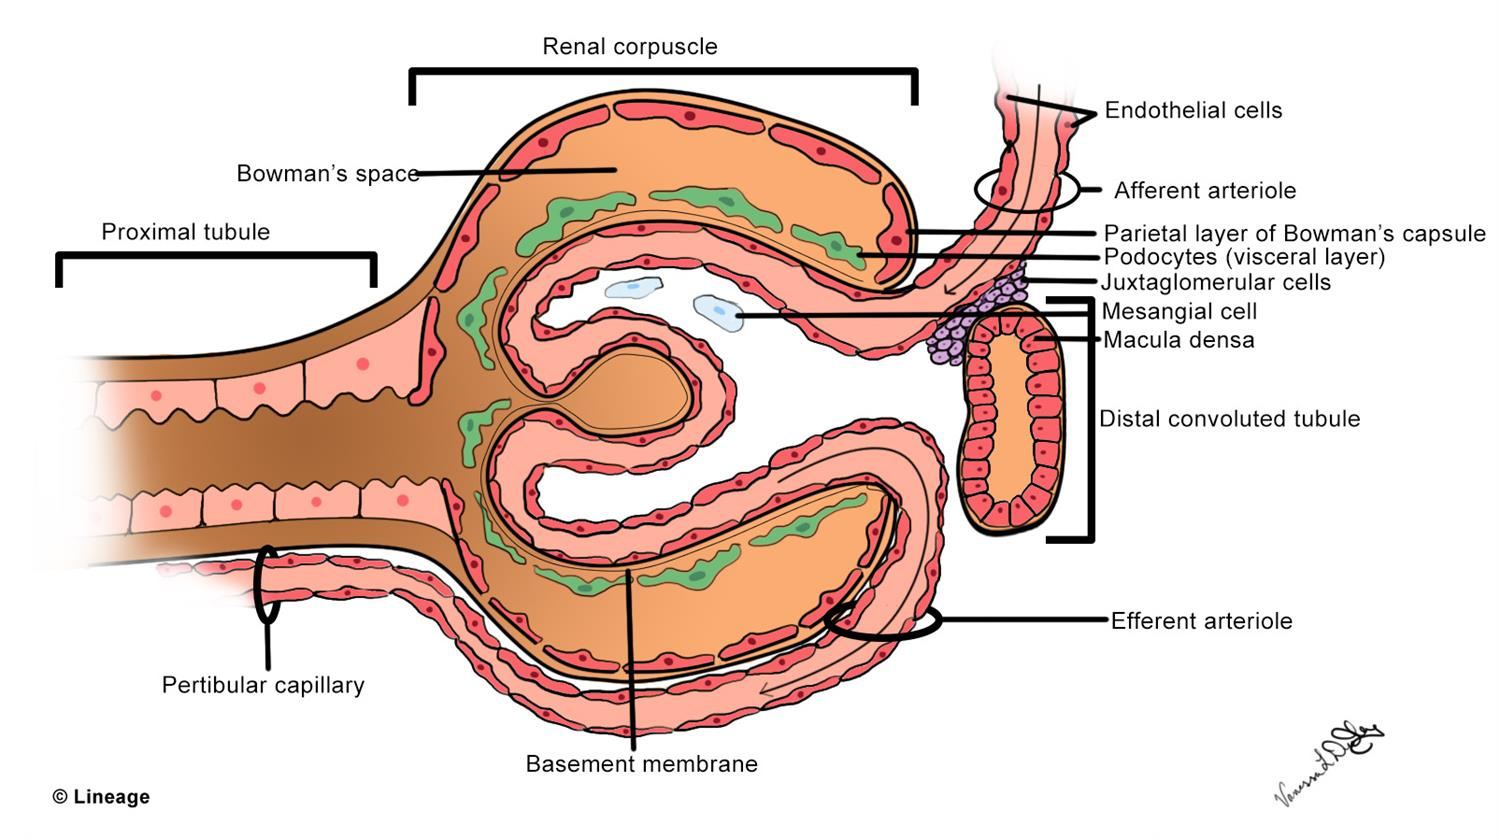 Kidney Anatomy - Renal - Medbullets Step 1